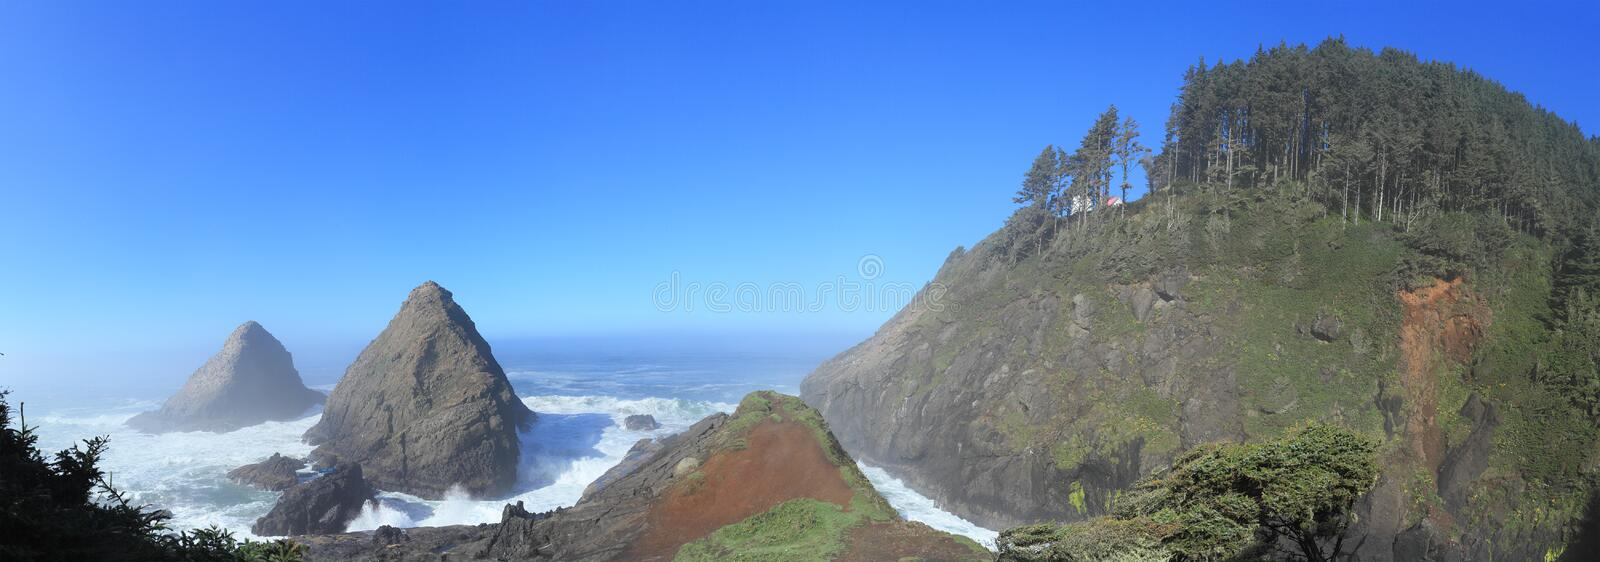 Heceta Head Light. Is a lighthouse located on the Oregon Coast 13 miles north of Florence, Oregon and 13 miles south of Yachats, Oregon, United States stock photography